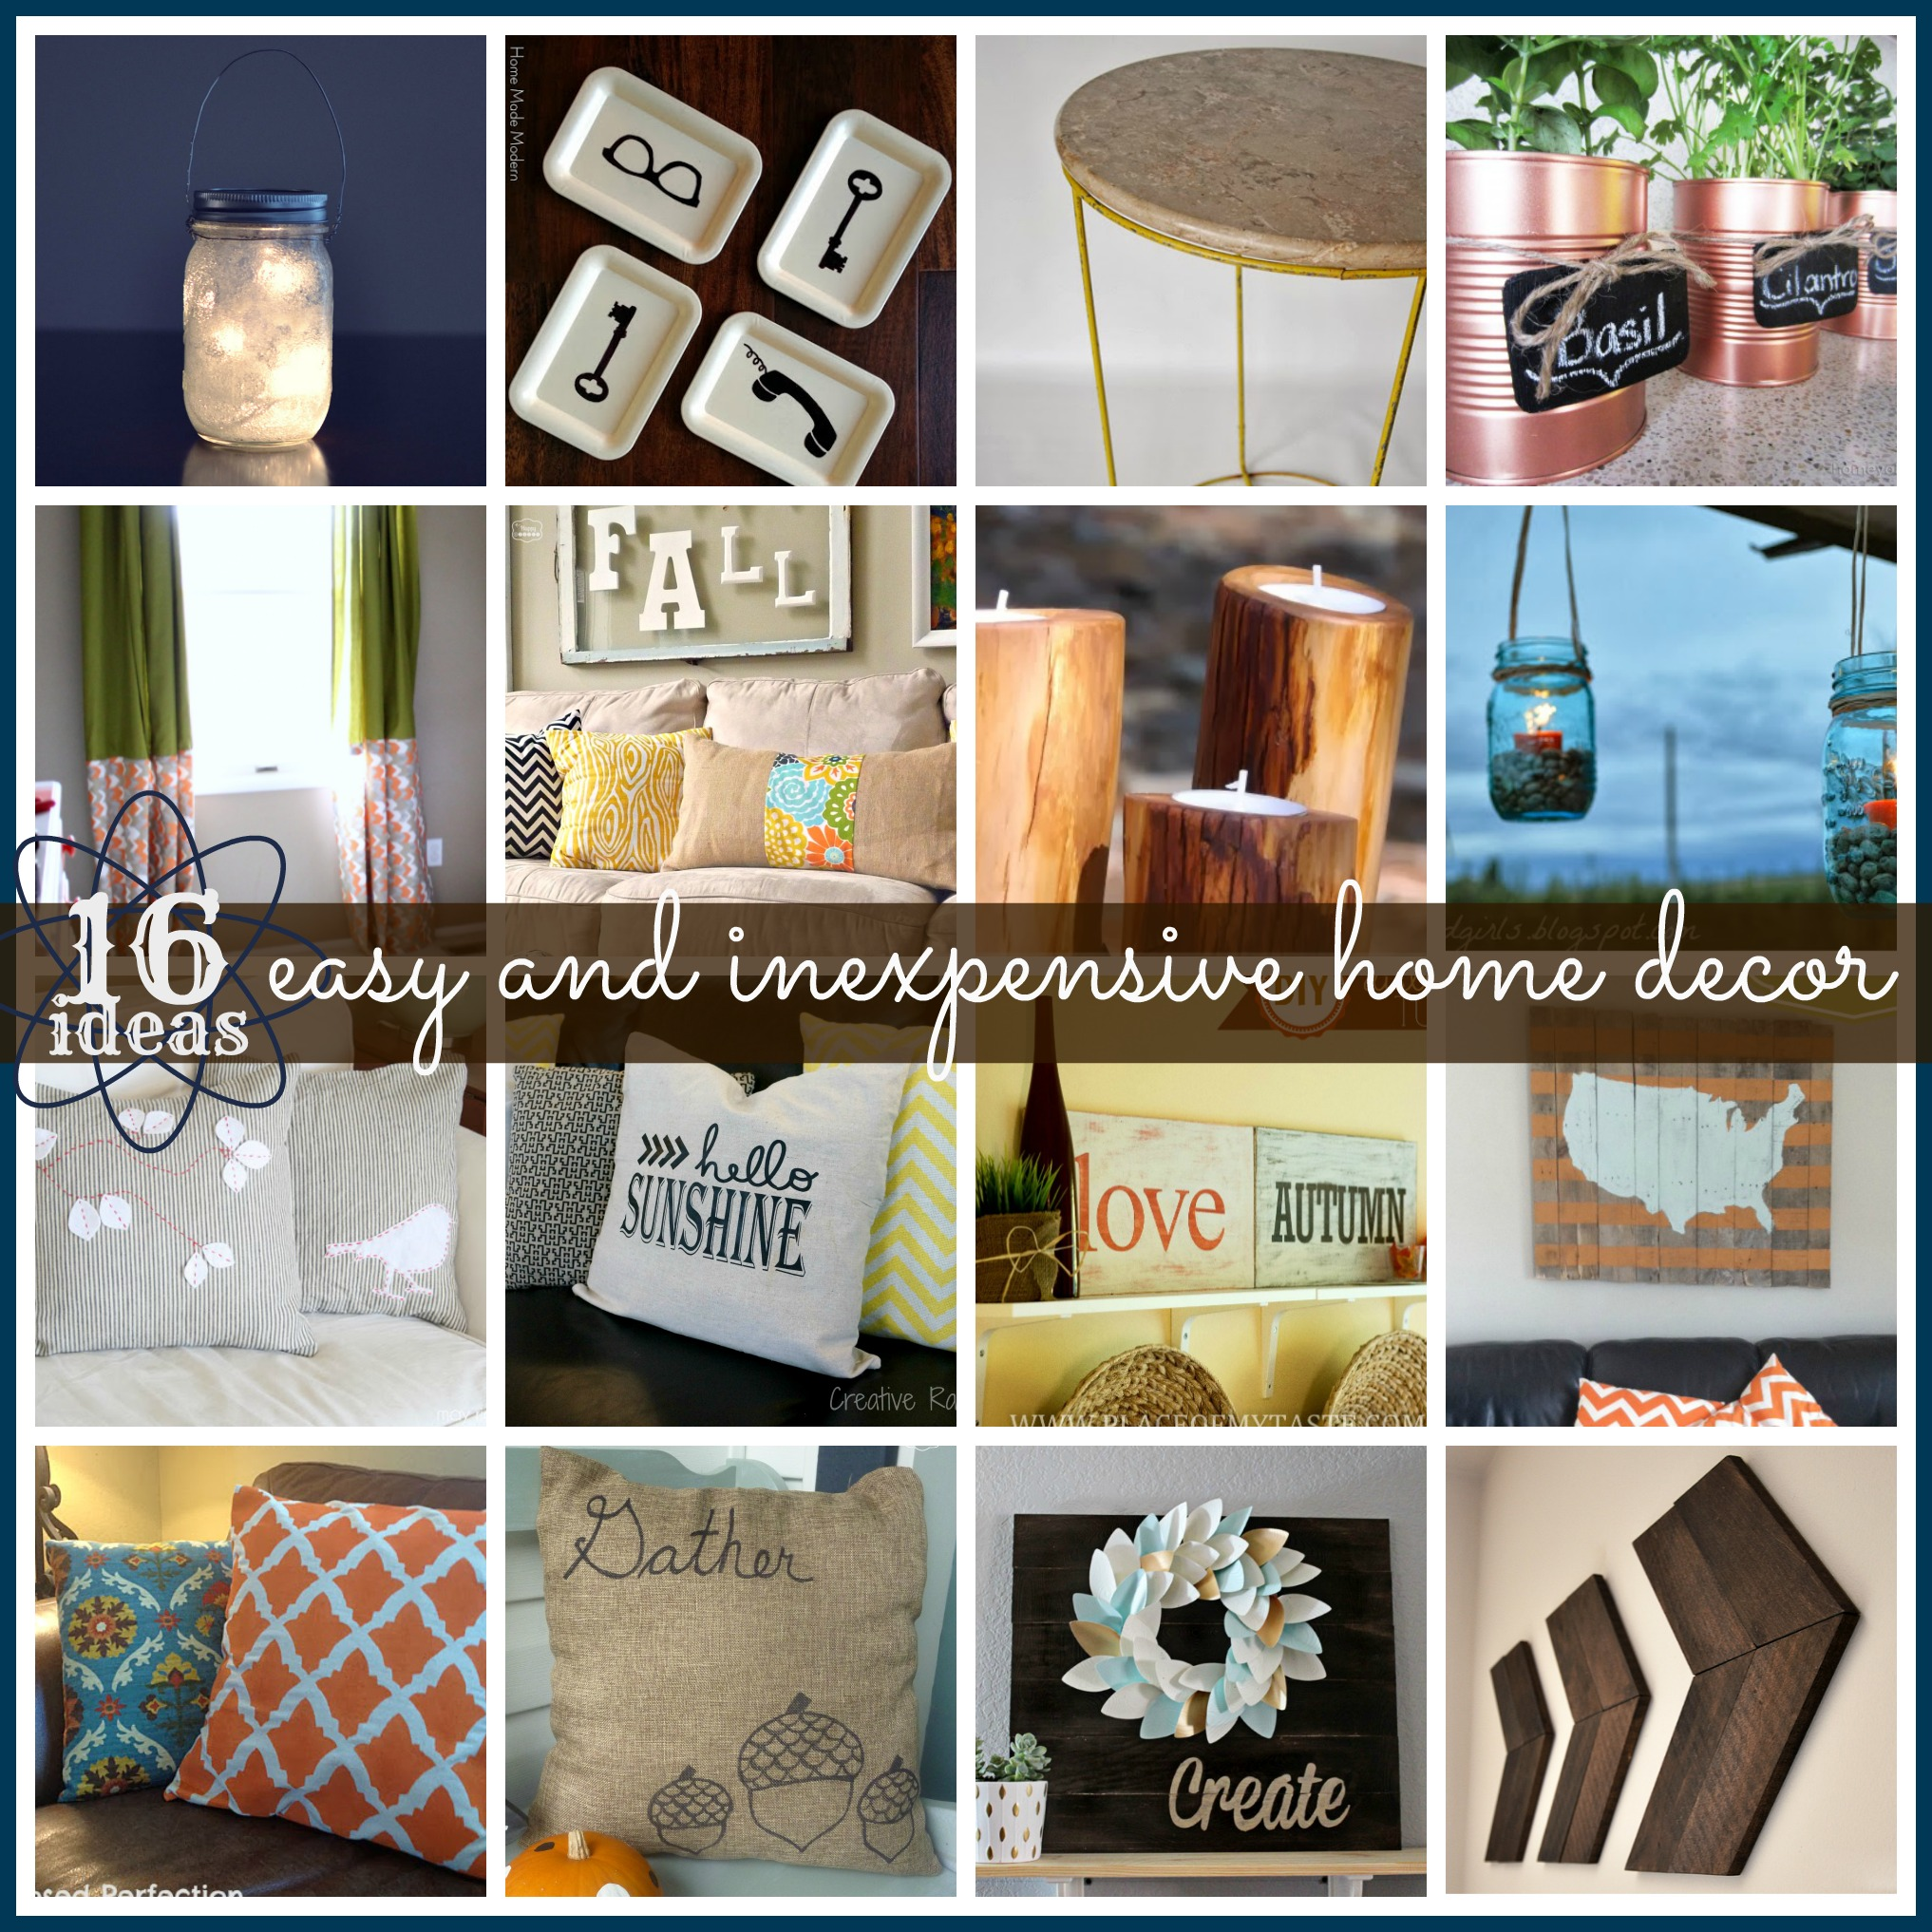 Easy Home Decor Ideas: Link Party Features [16 Inexpensive & Easy Home Decor